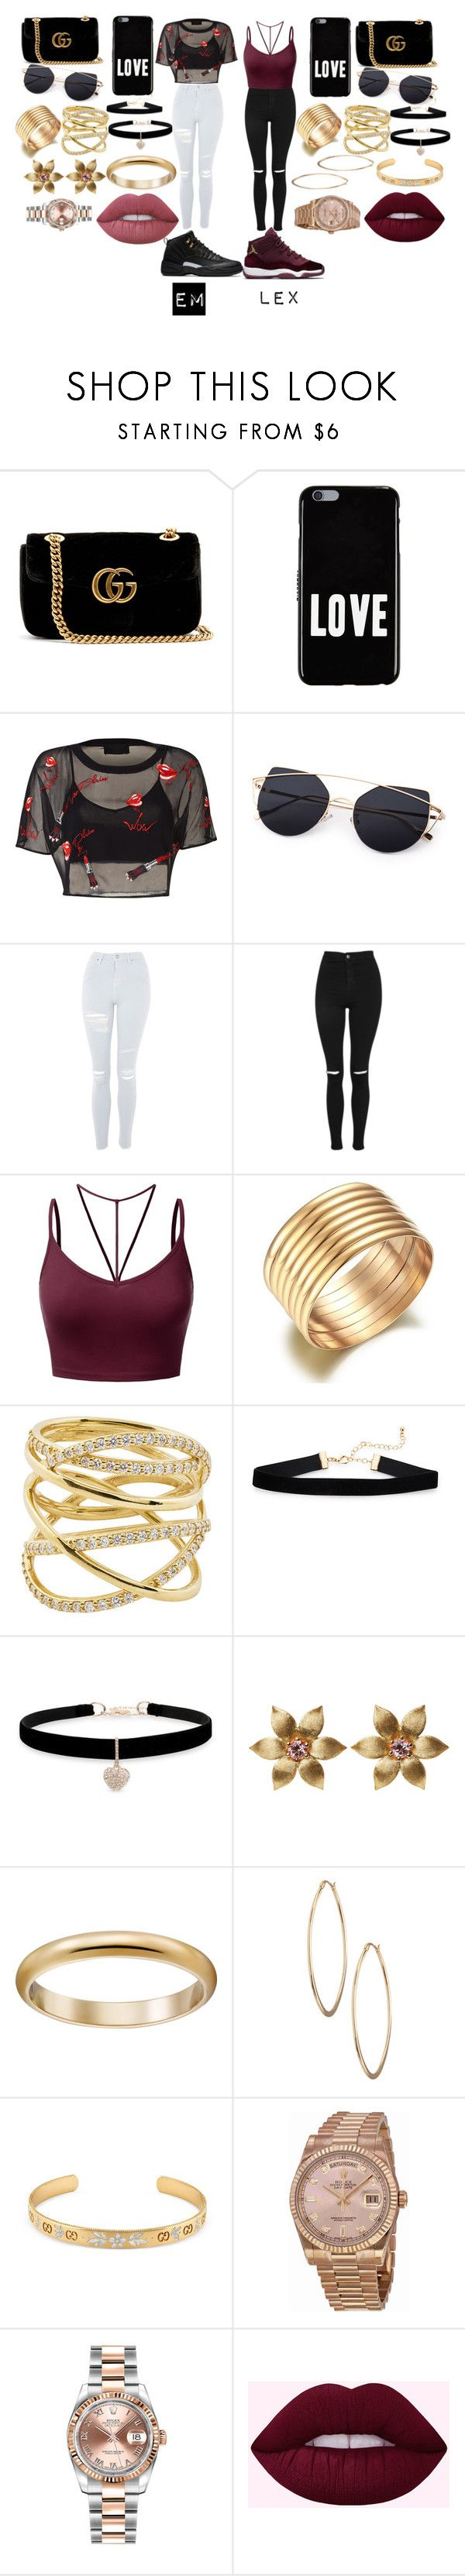 """sister goals pt 4"" by lowkeysavage11 on Polyvore featuring Gucci, Givenchy, Topshop, J.TOMSON, Lana, Betsey Johnson, La Perla, Lydell NYC, Rolex and Lime Crime"